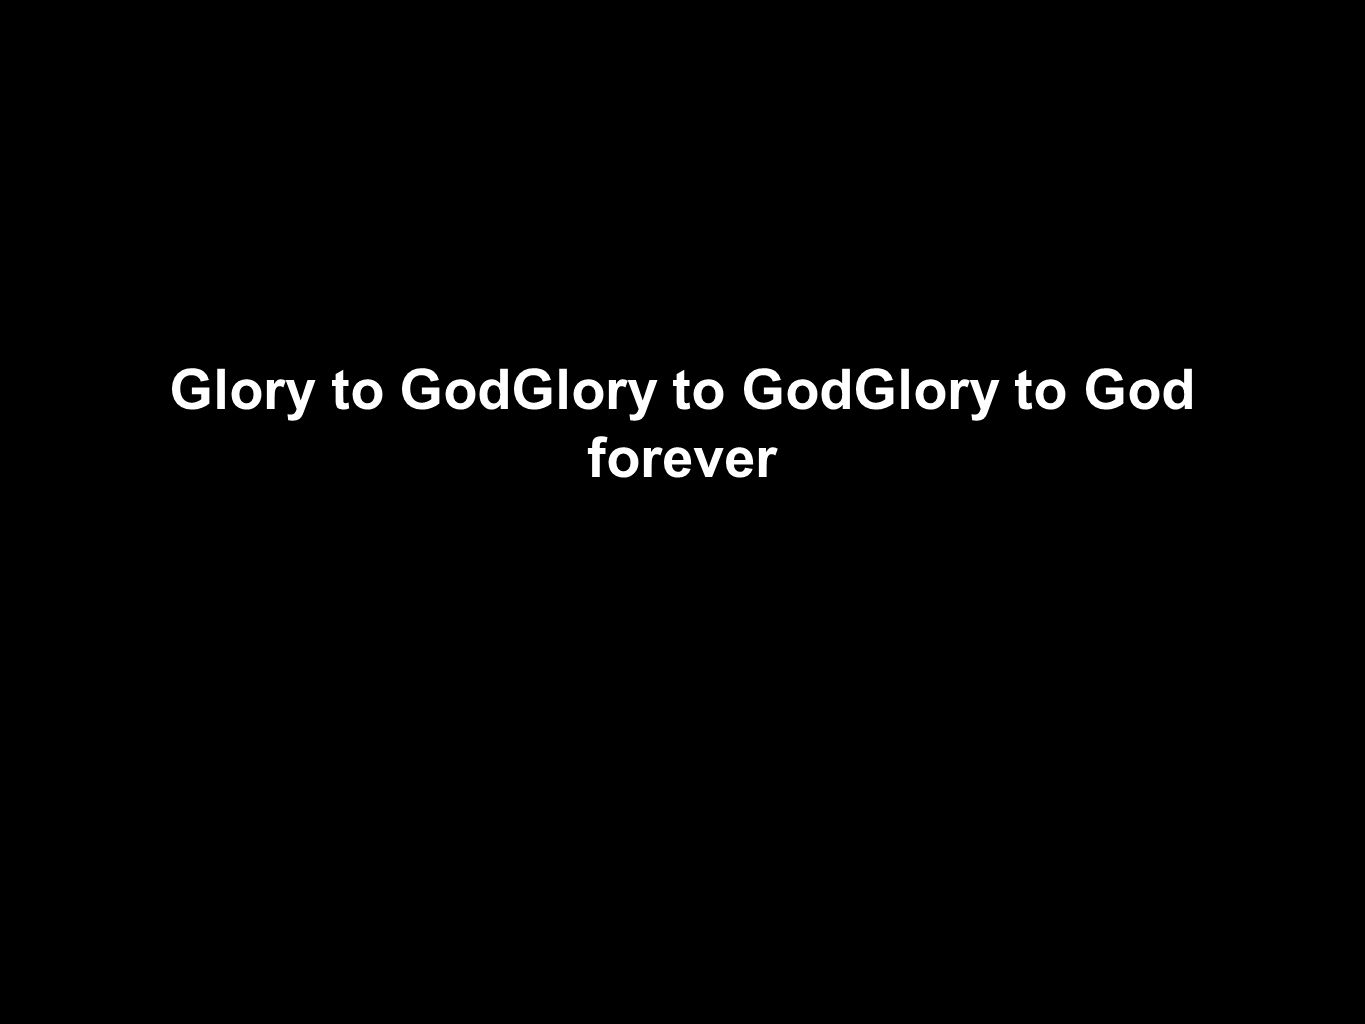 Glory to GodGlory to GodGlory to God forever